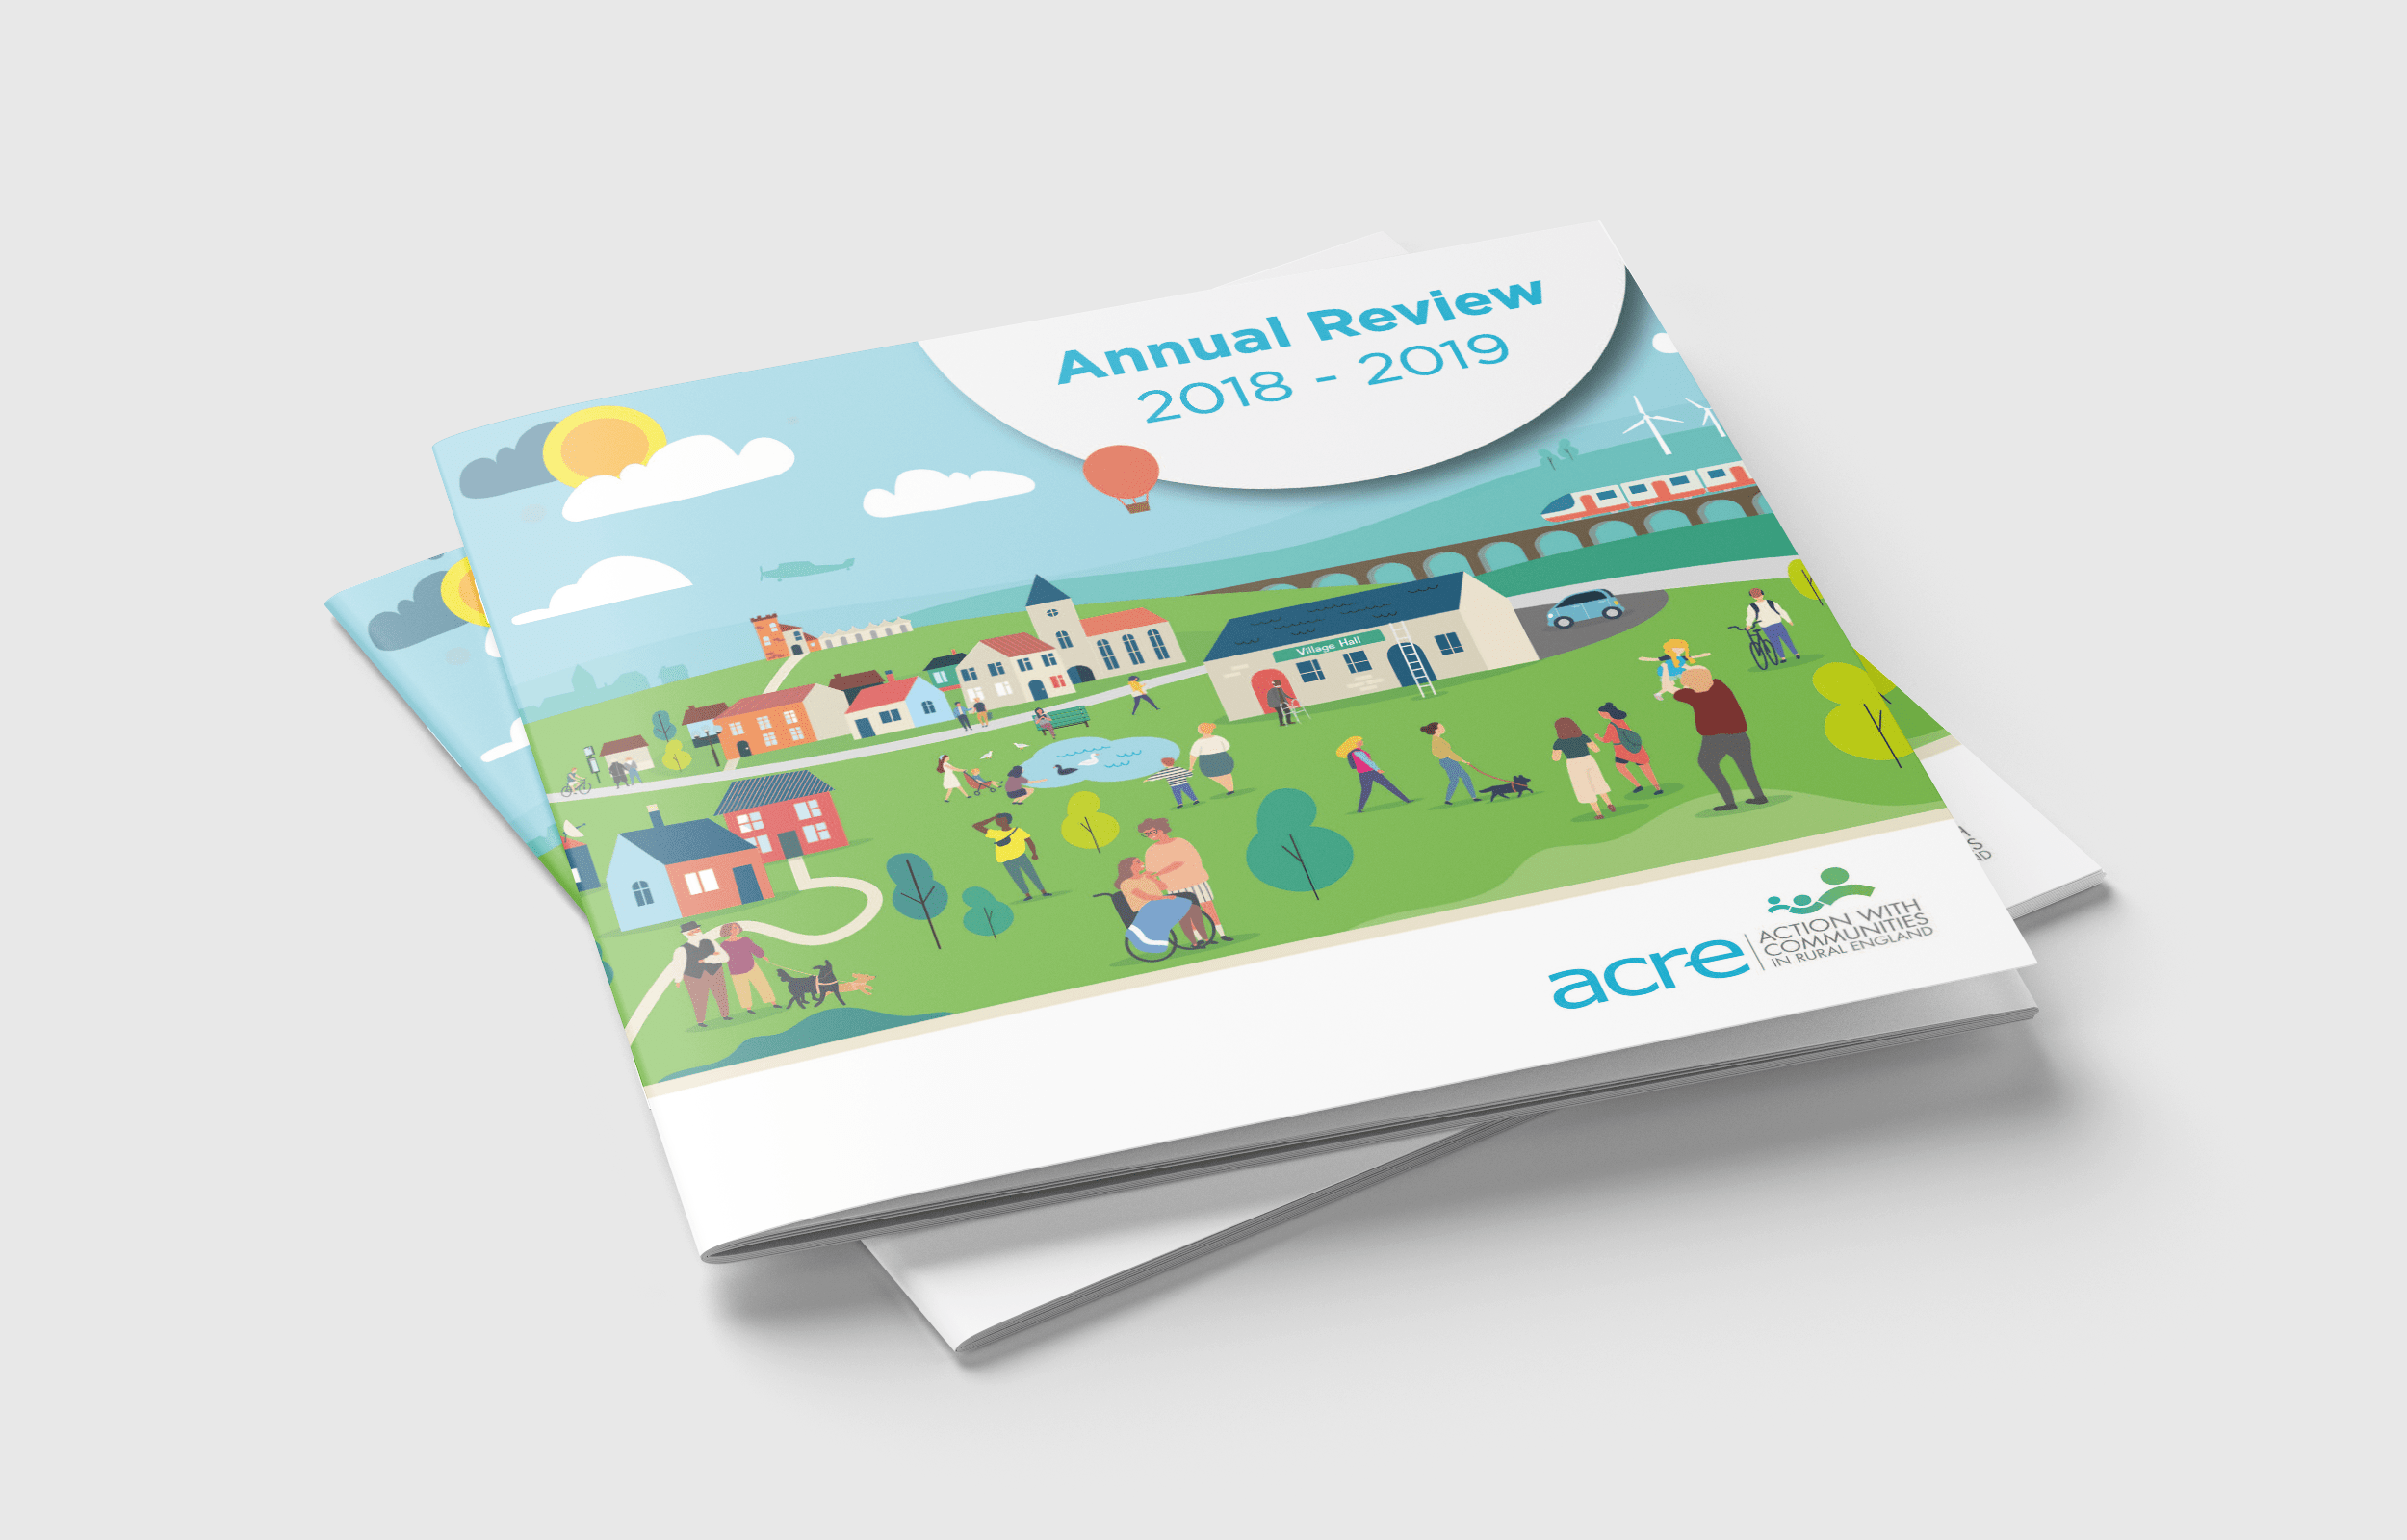 ACRE Annual Review 2018 - 2019 Print Design